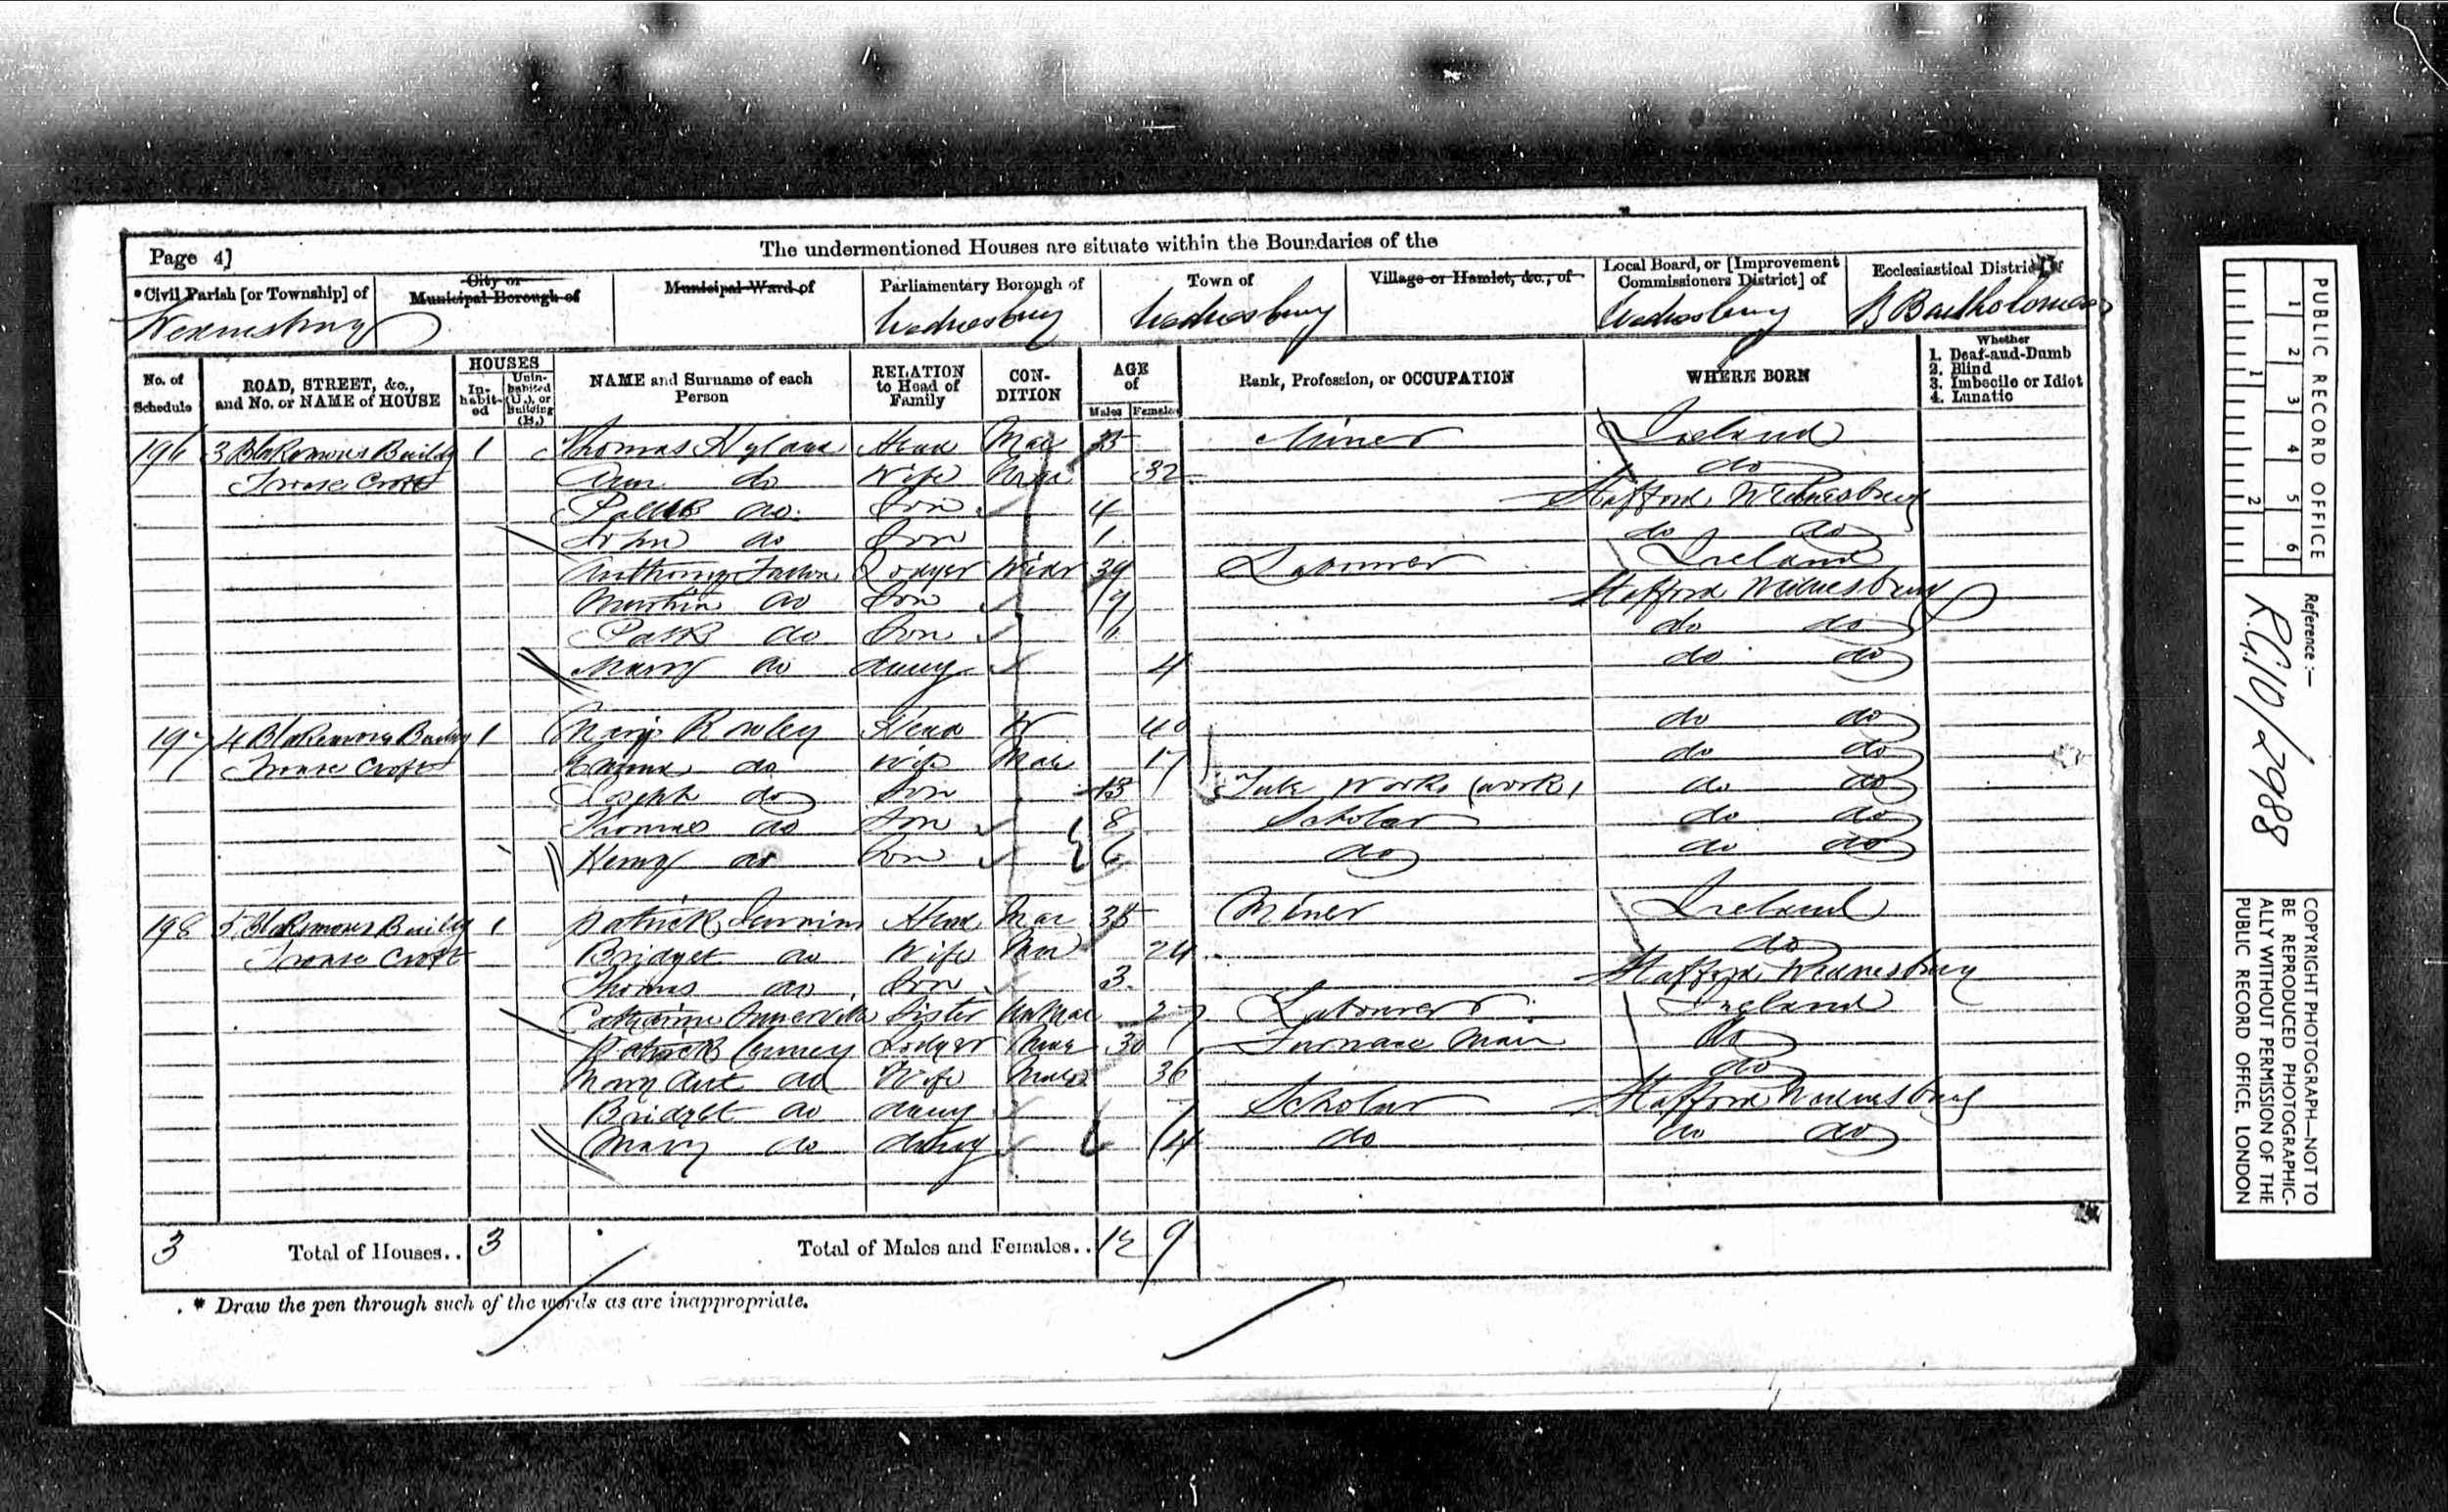 Census Record, Wednesbury, Staffordshire, England